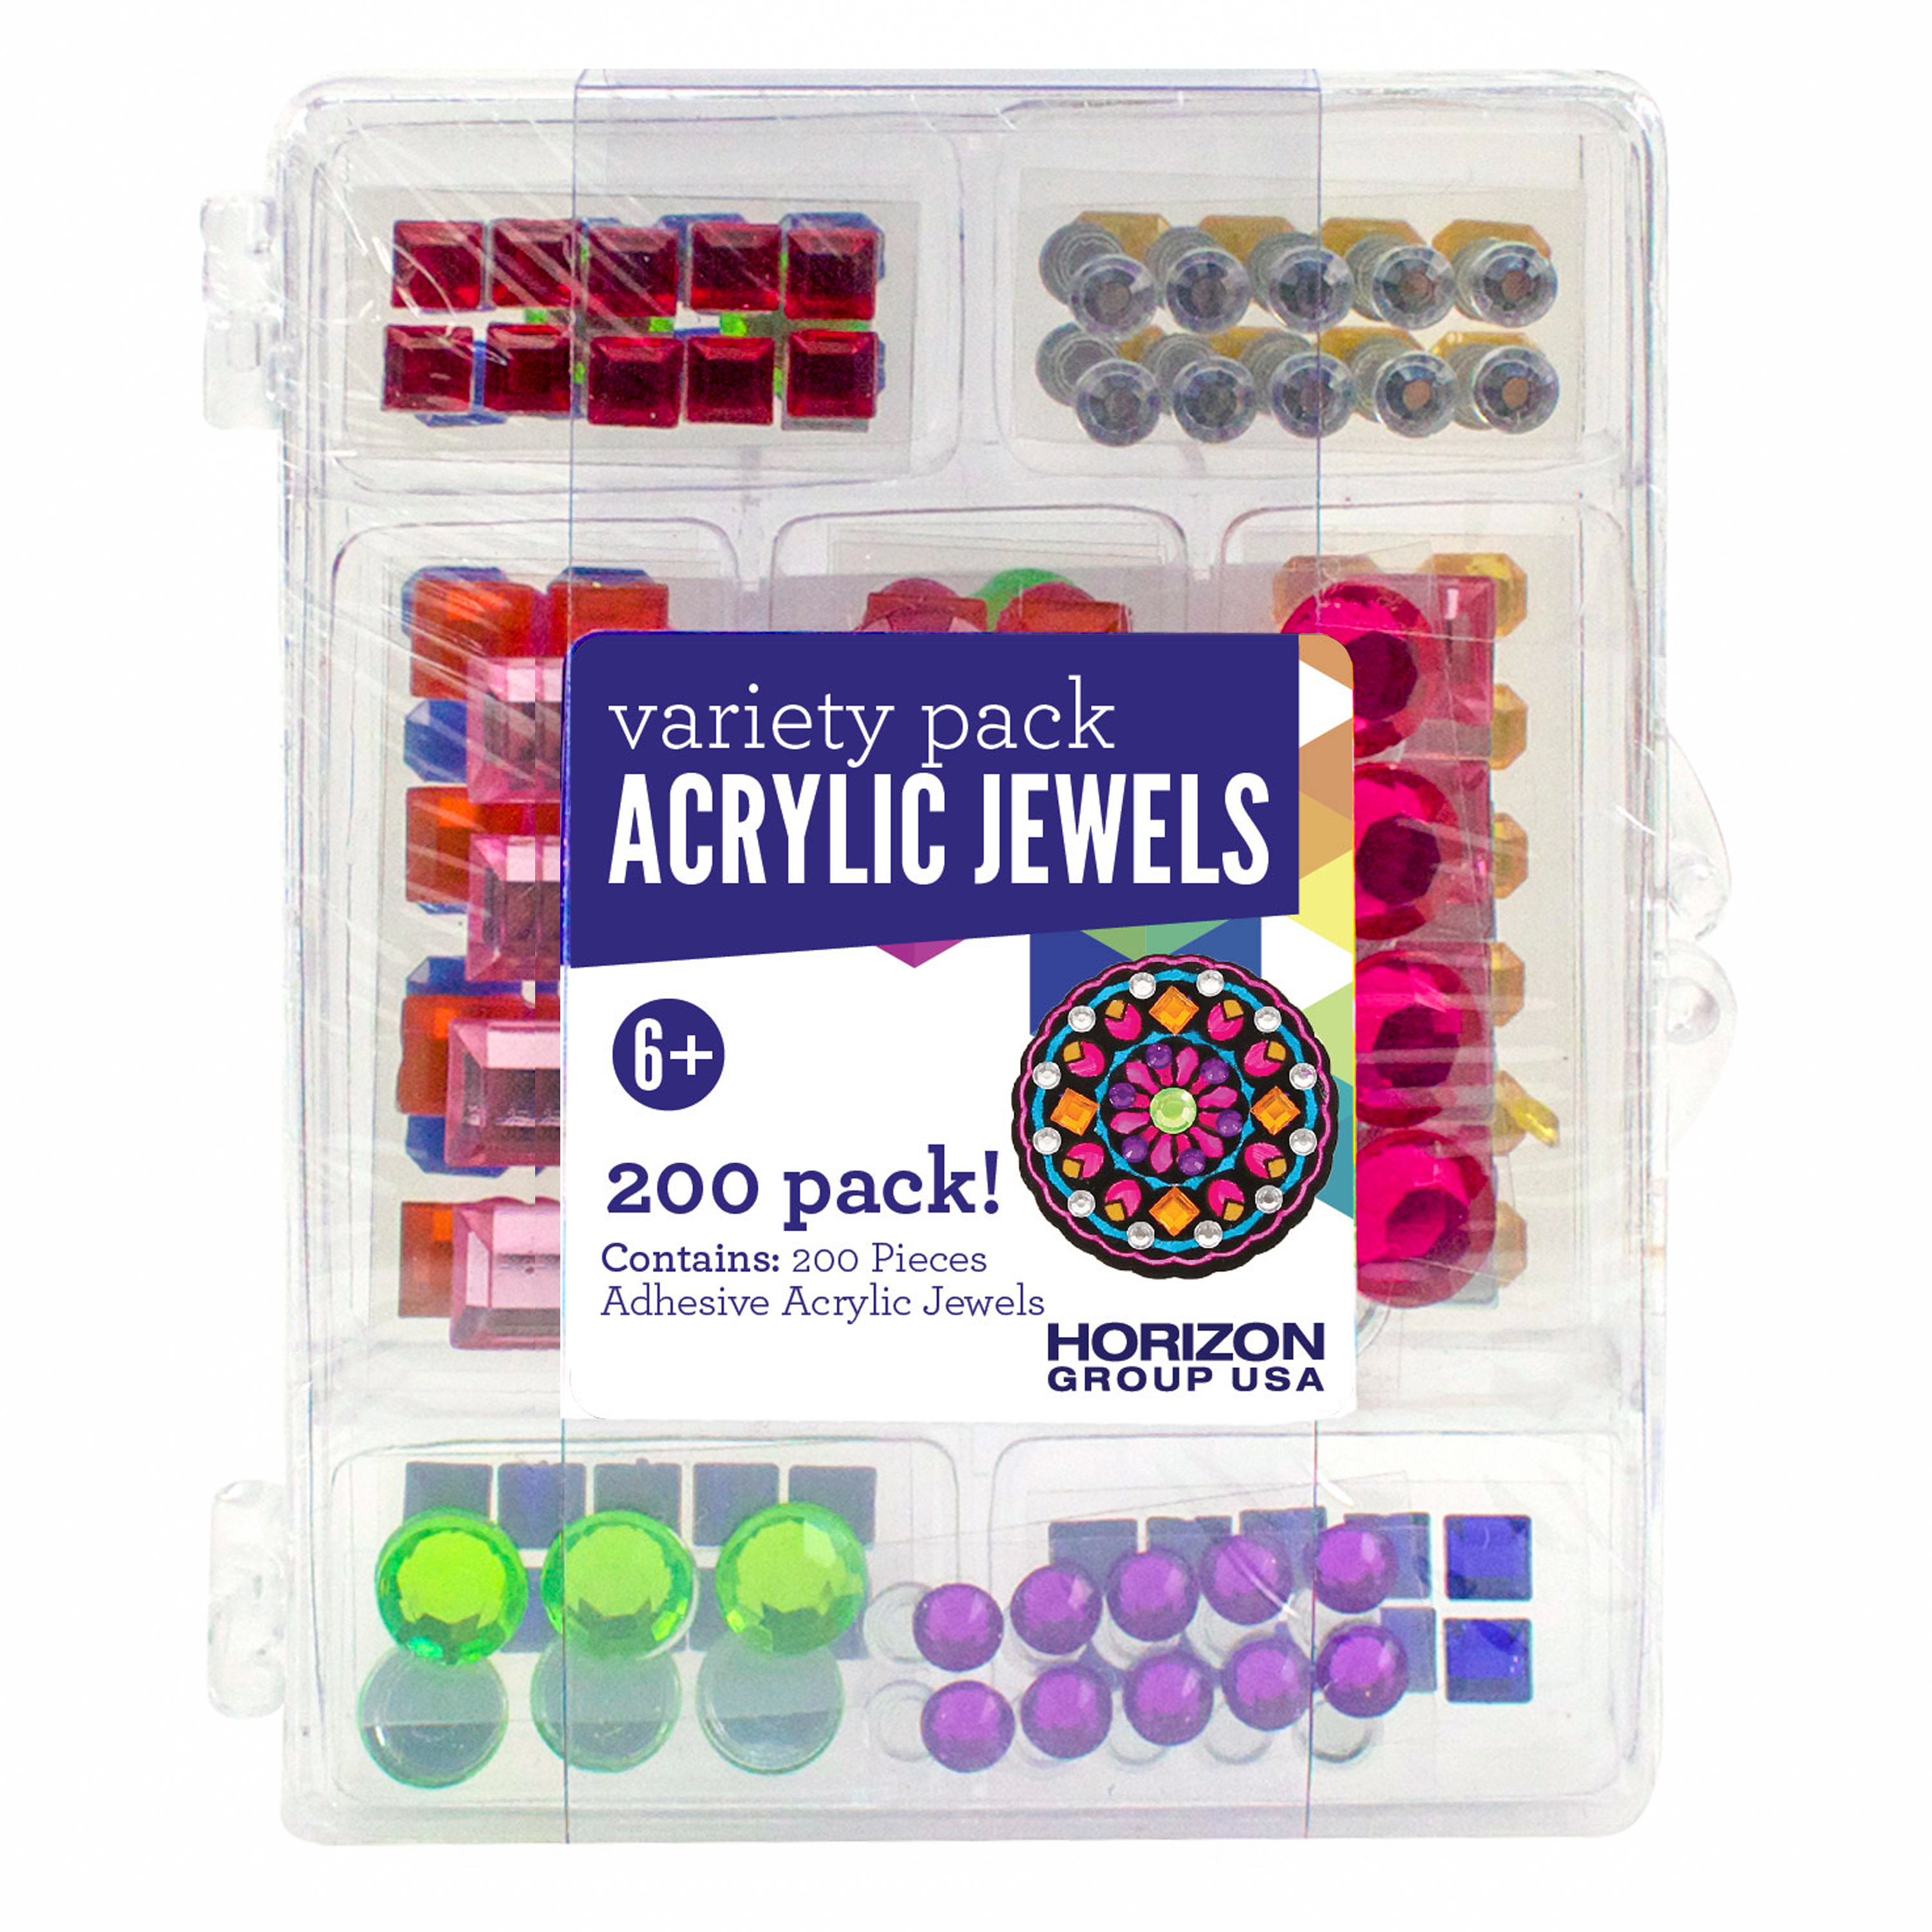 Adhesive Acrylic Jewels Value Pack by Horizon Group USA